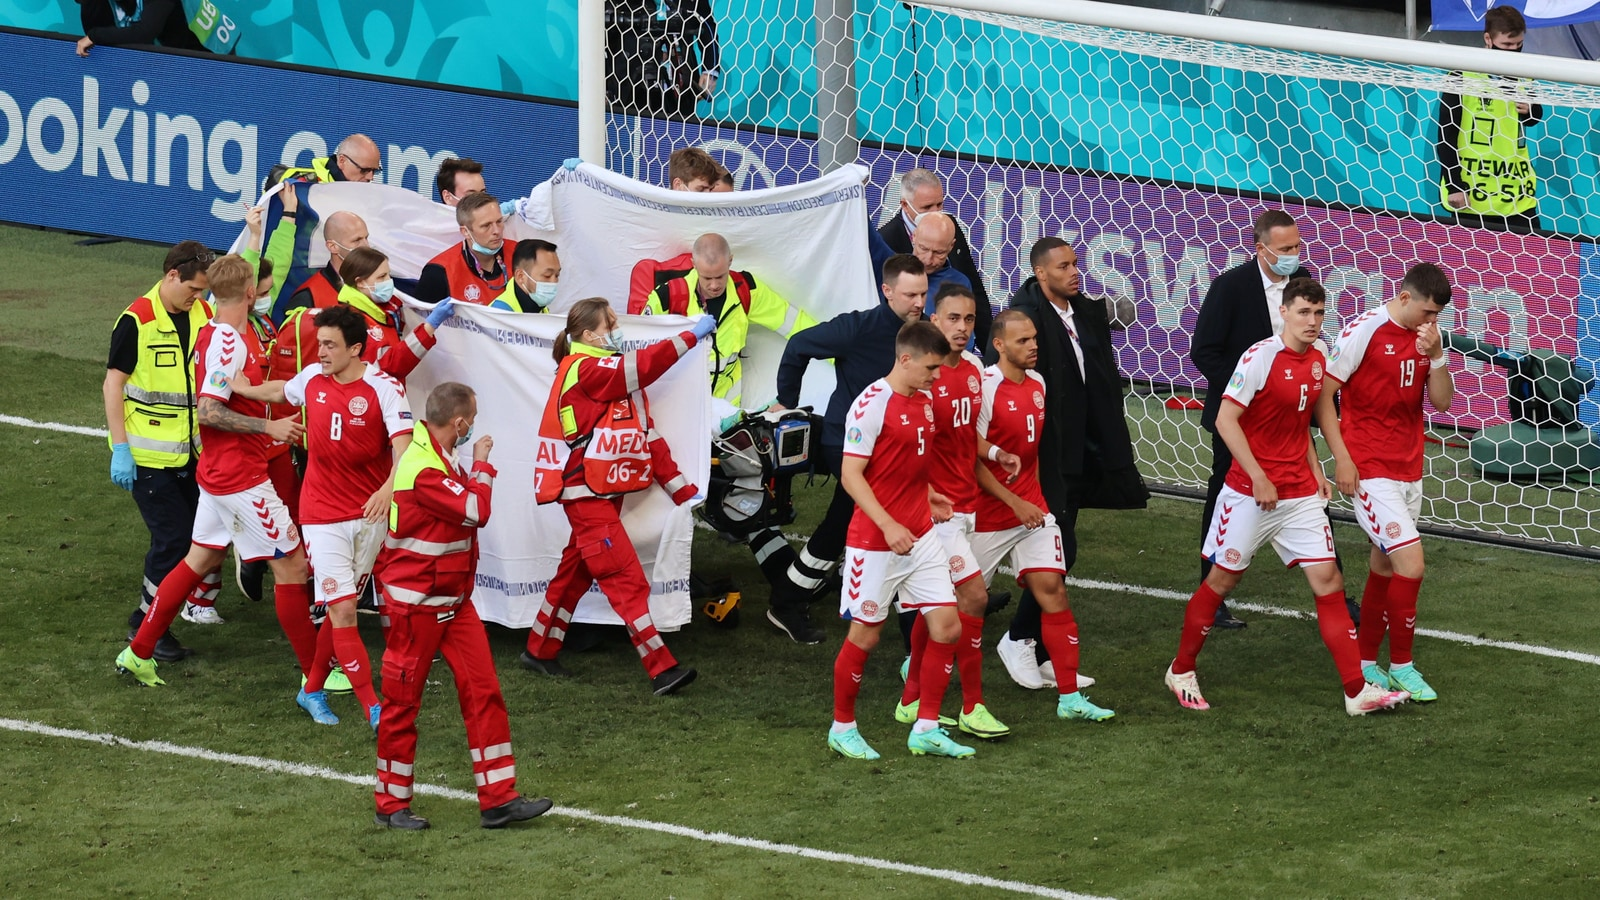 Denmark's Christian Eriksen collpased on ground during Euro 2020 match, fans and players send in good wishes on Twitter - Marketshockers